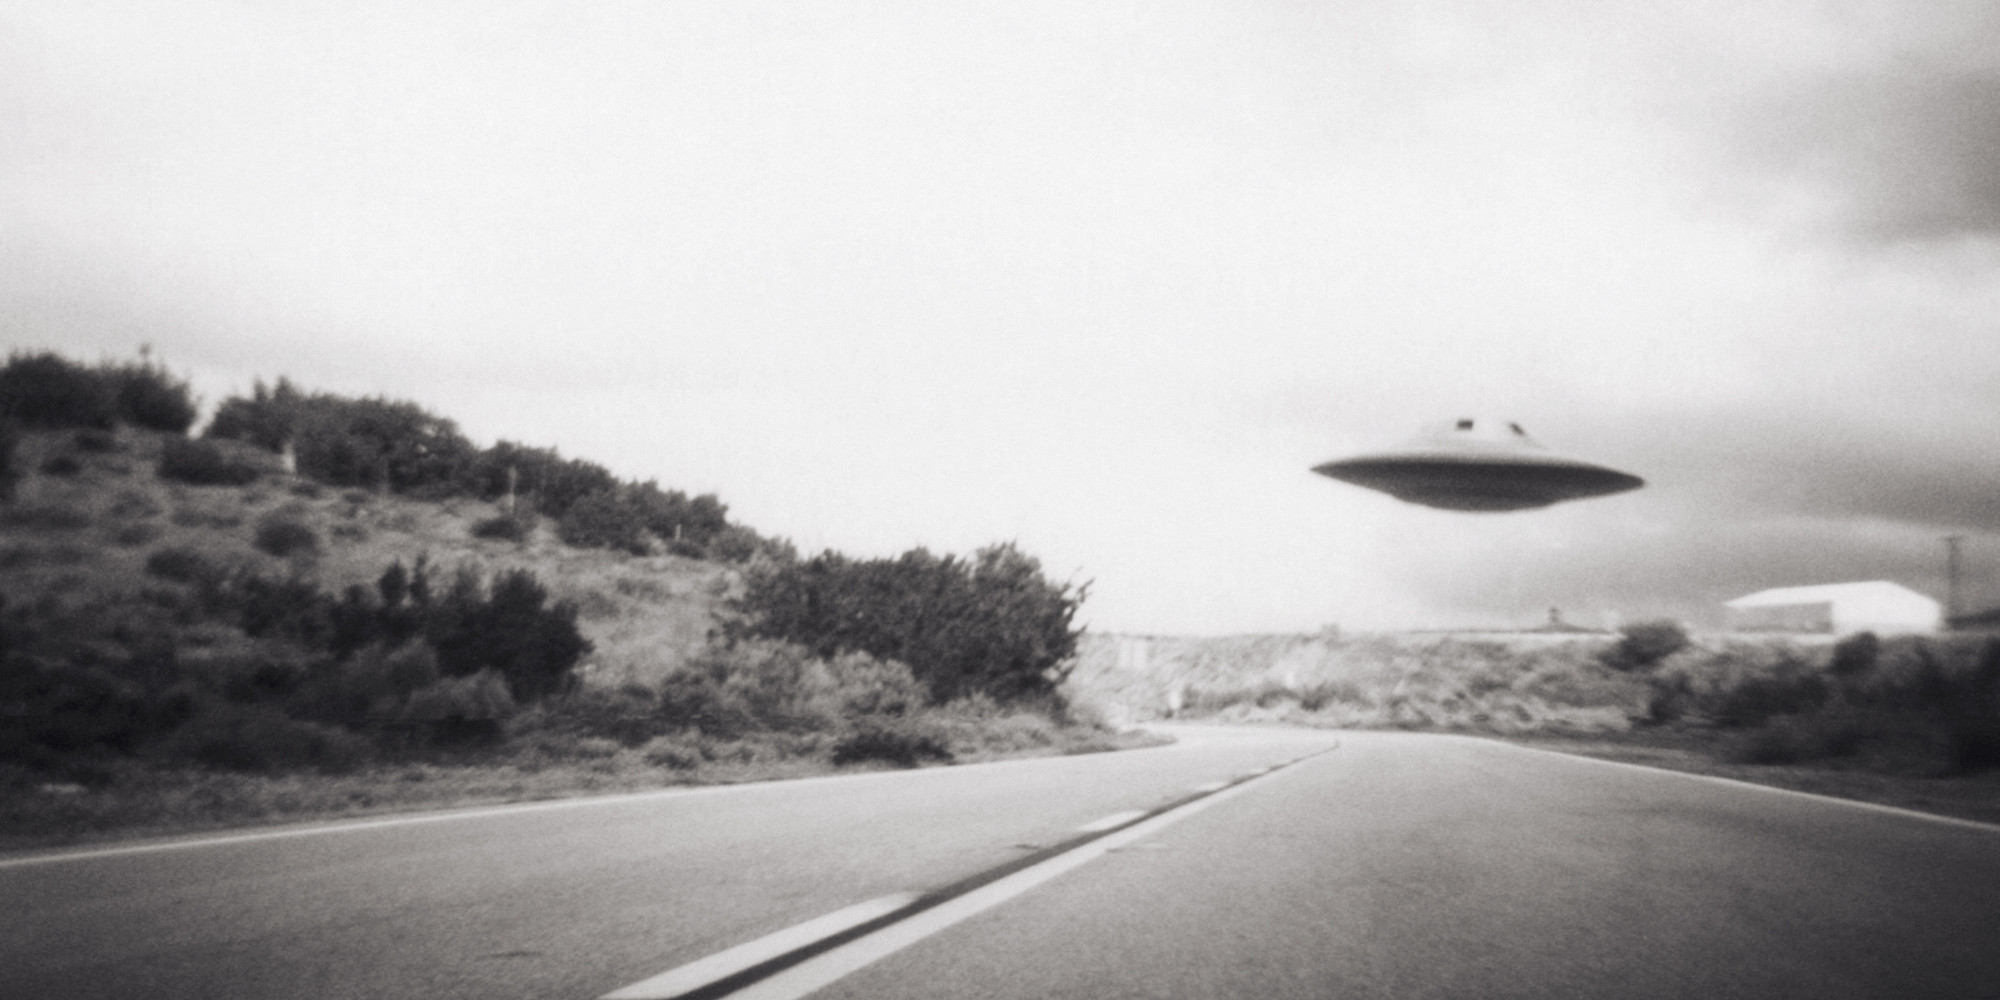 Alien Photo: The Best And Worst UFO Sightings Of 2014